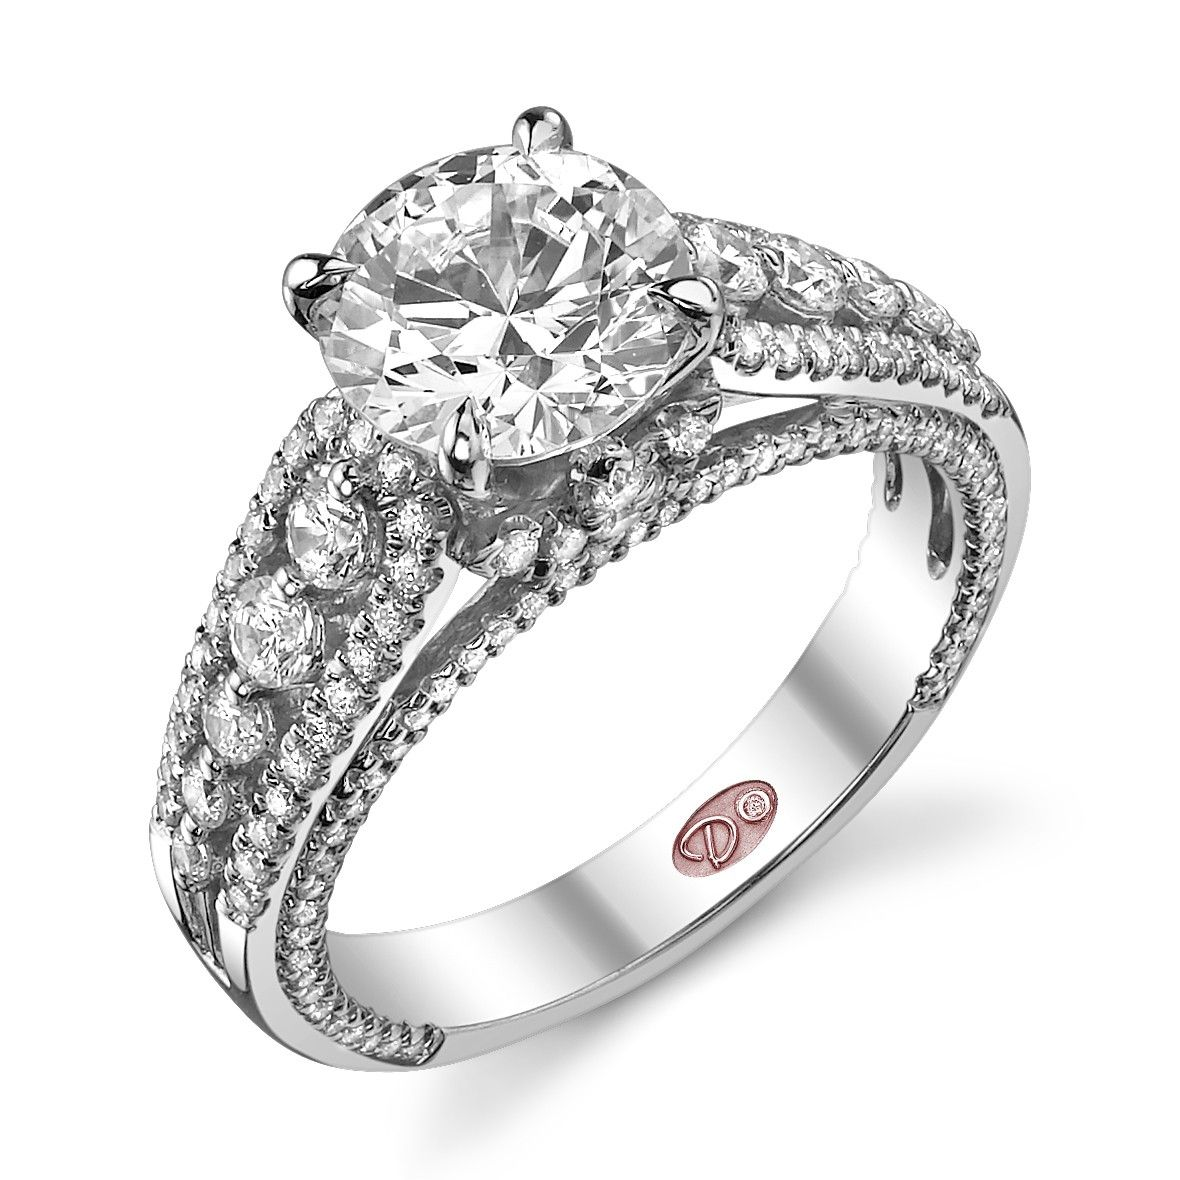 18k white gold semimount with 0.79 carat total weight